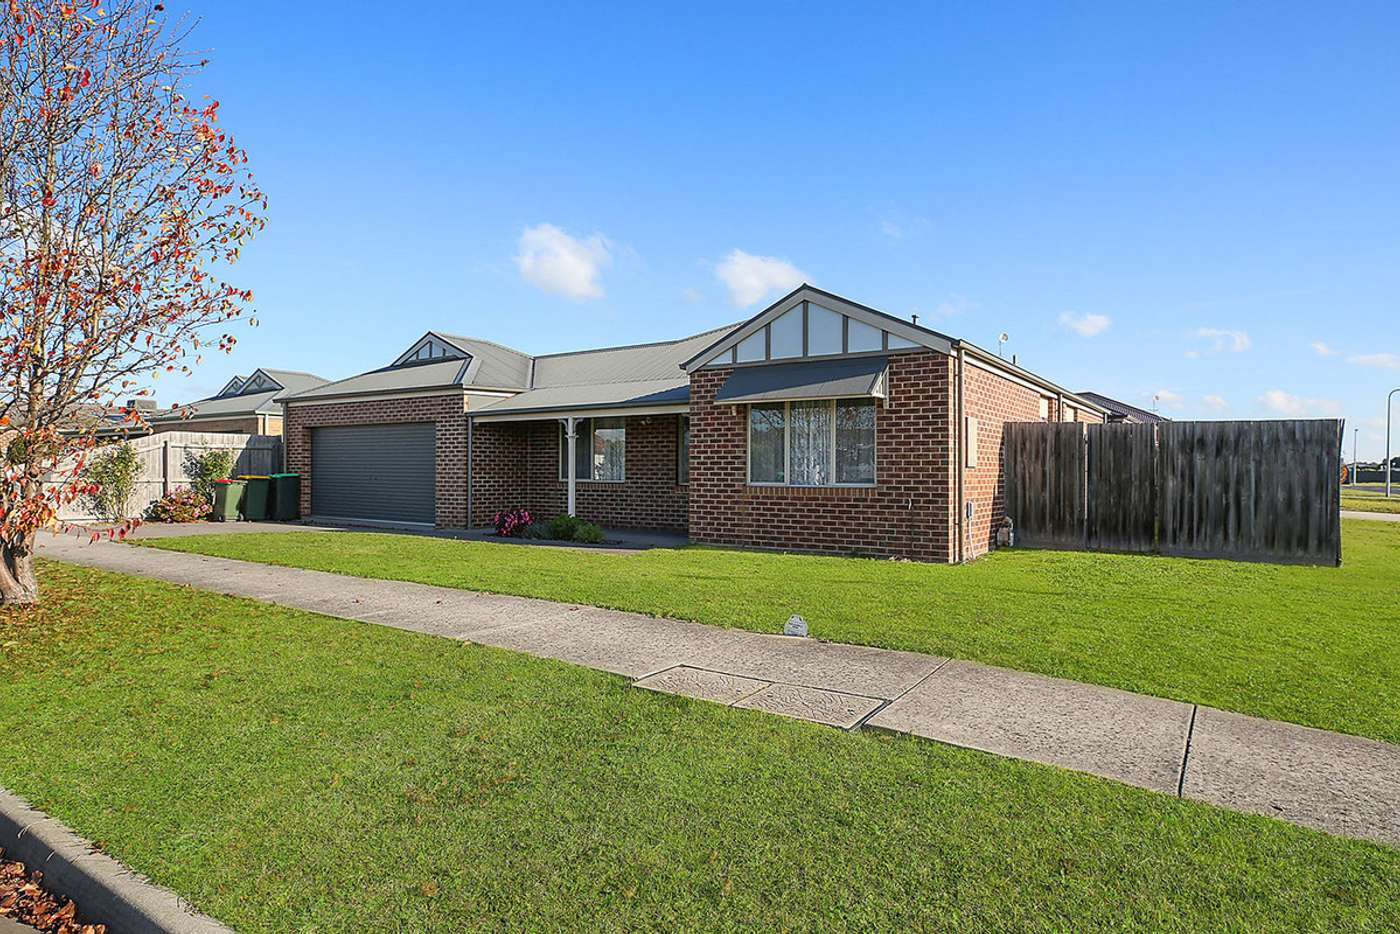 Main view of Homely house listing, 105 Church Street, Colac VIC 3250